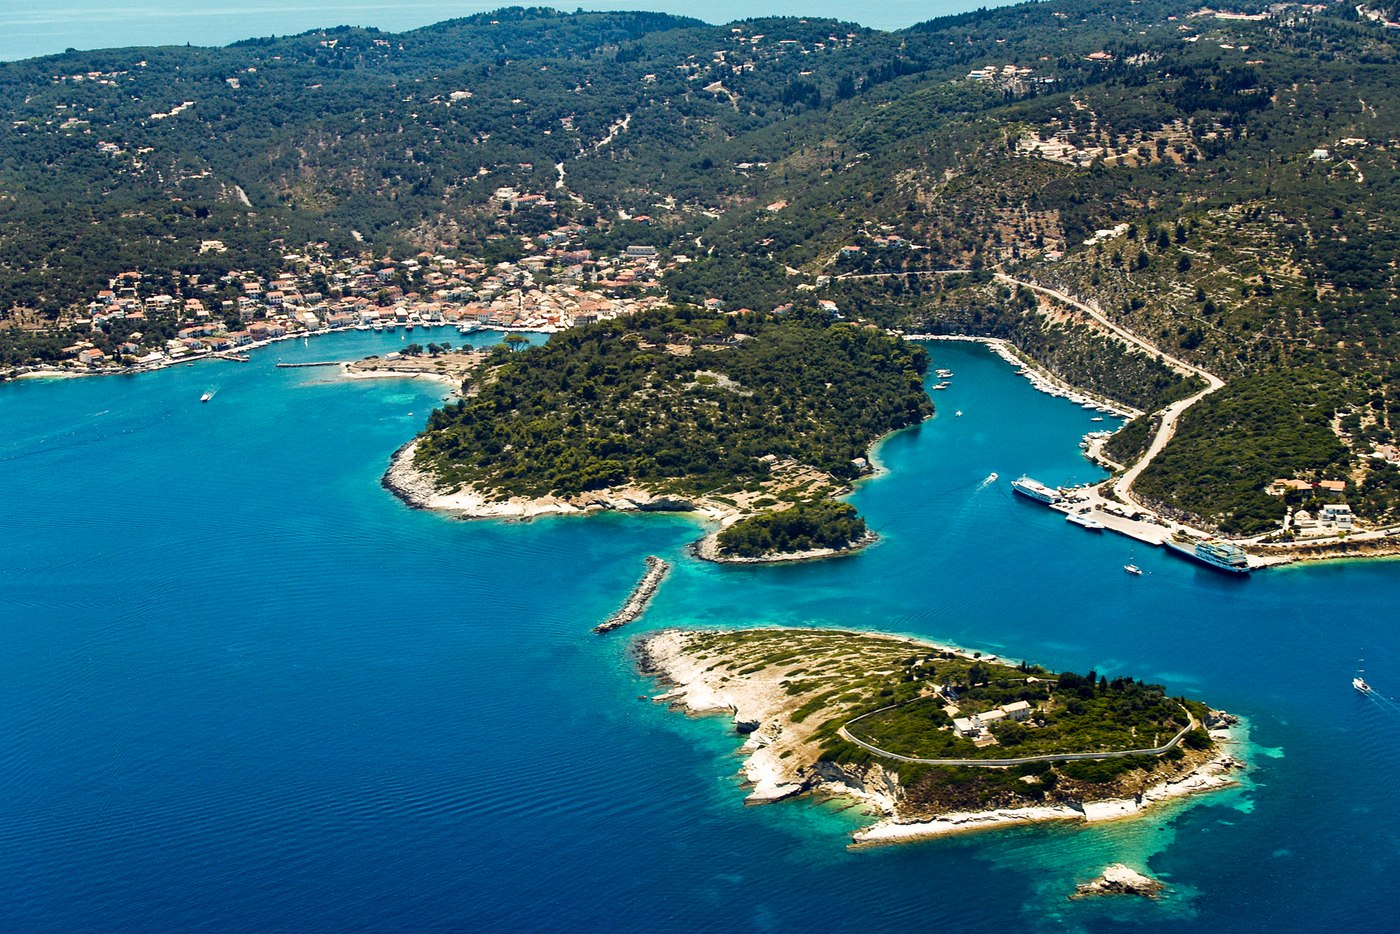 Photo Tour of Ionian Islands 2